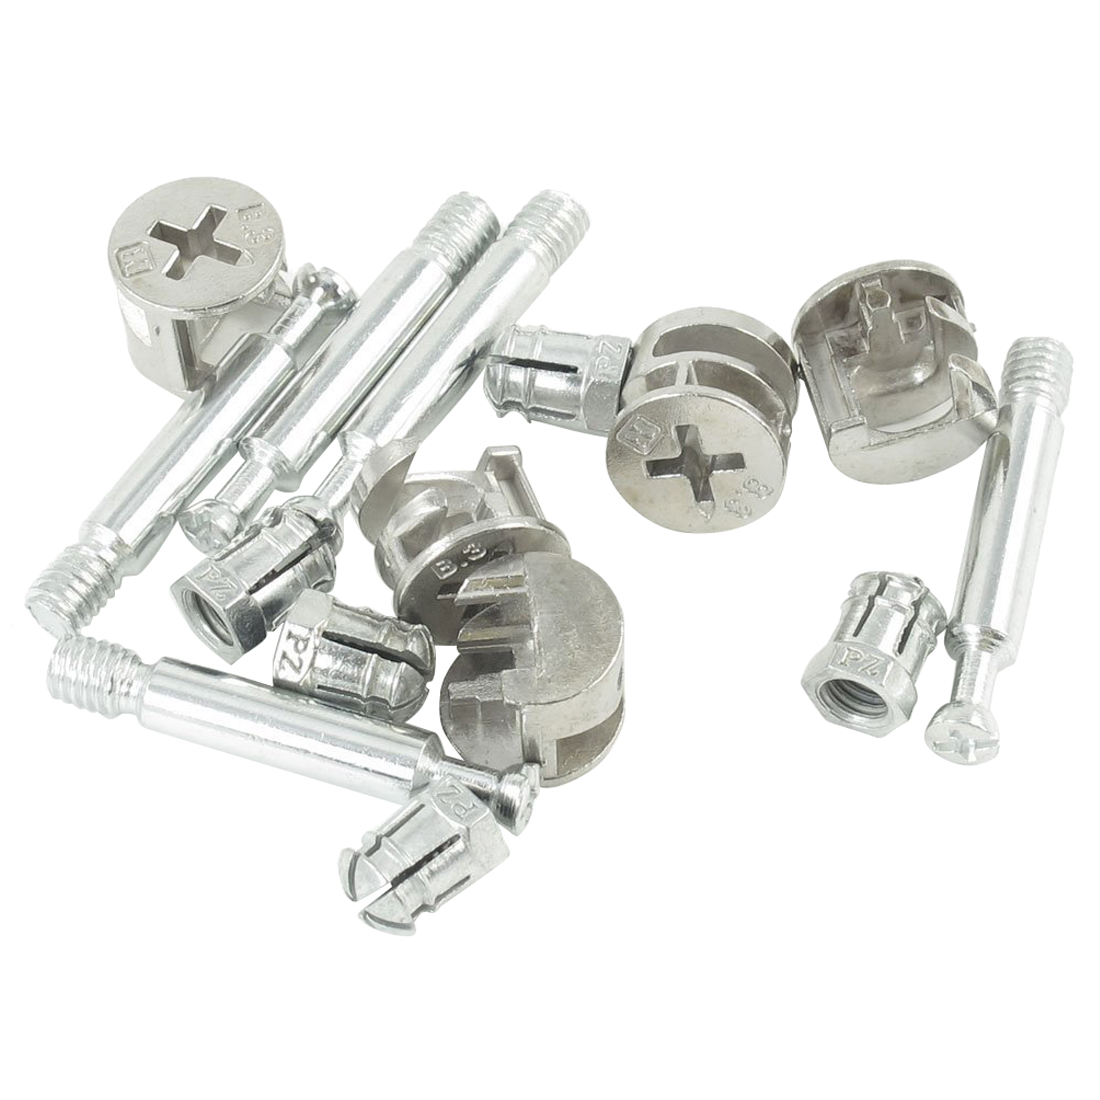 "5 Sets Furniture Connector 0.55"" Dia Cam Fittings Pre-inserted Nuts Dowels"